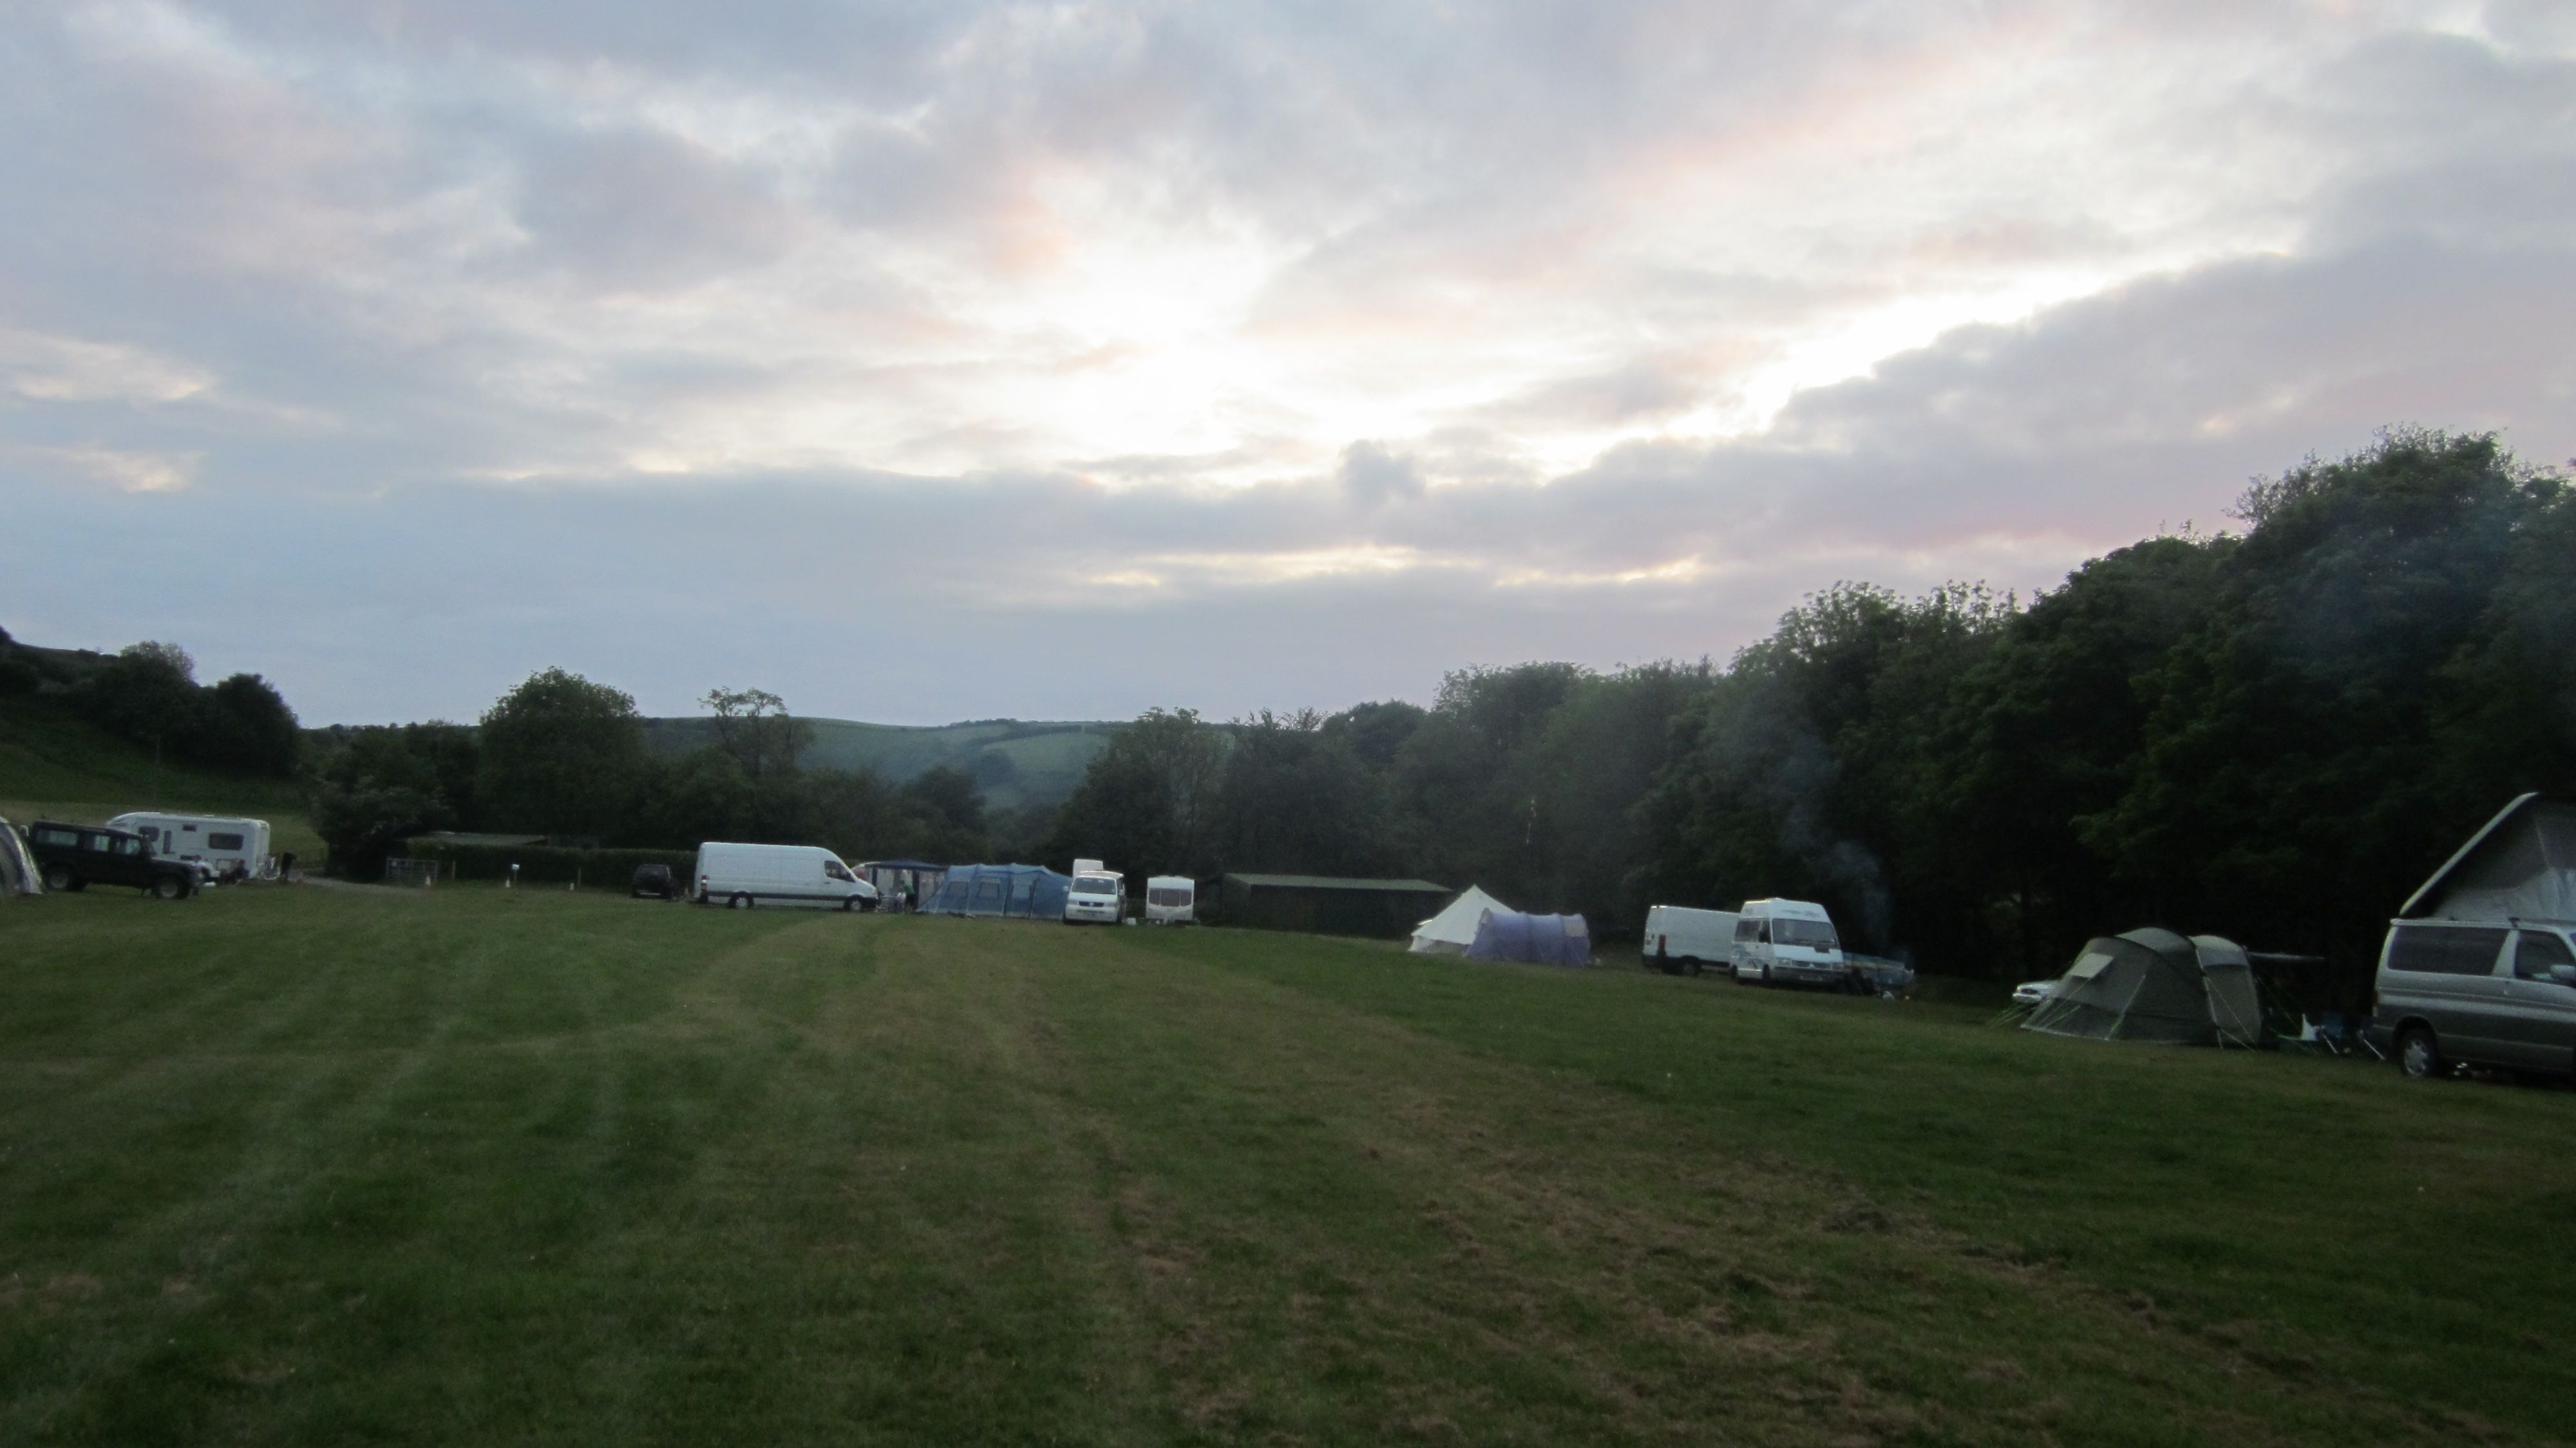 Leeford Farm, Exmoor.  Riverside camping and campfires galore!